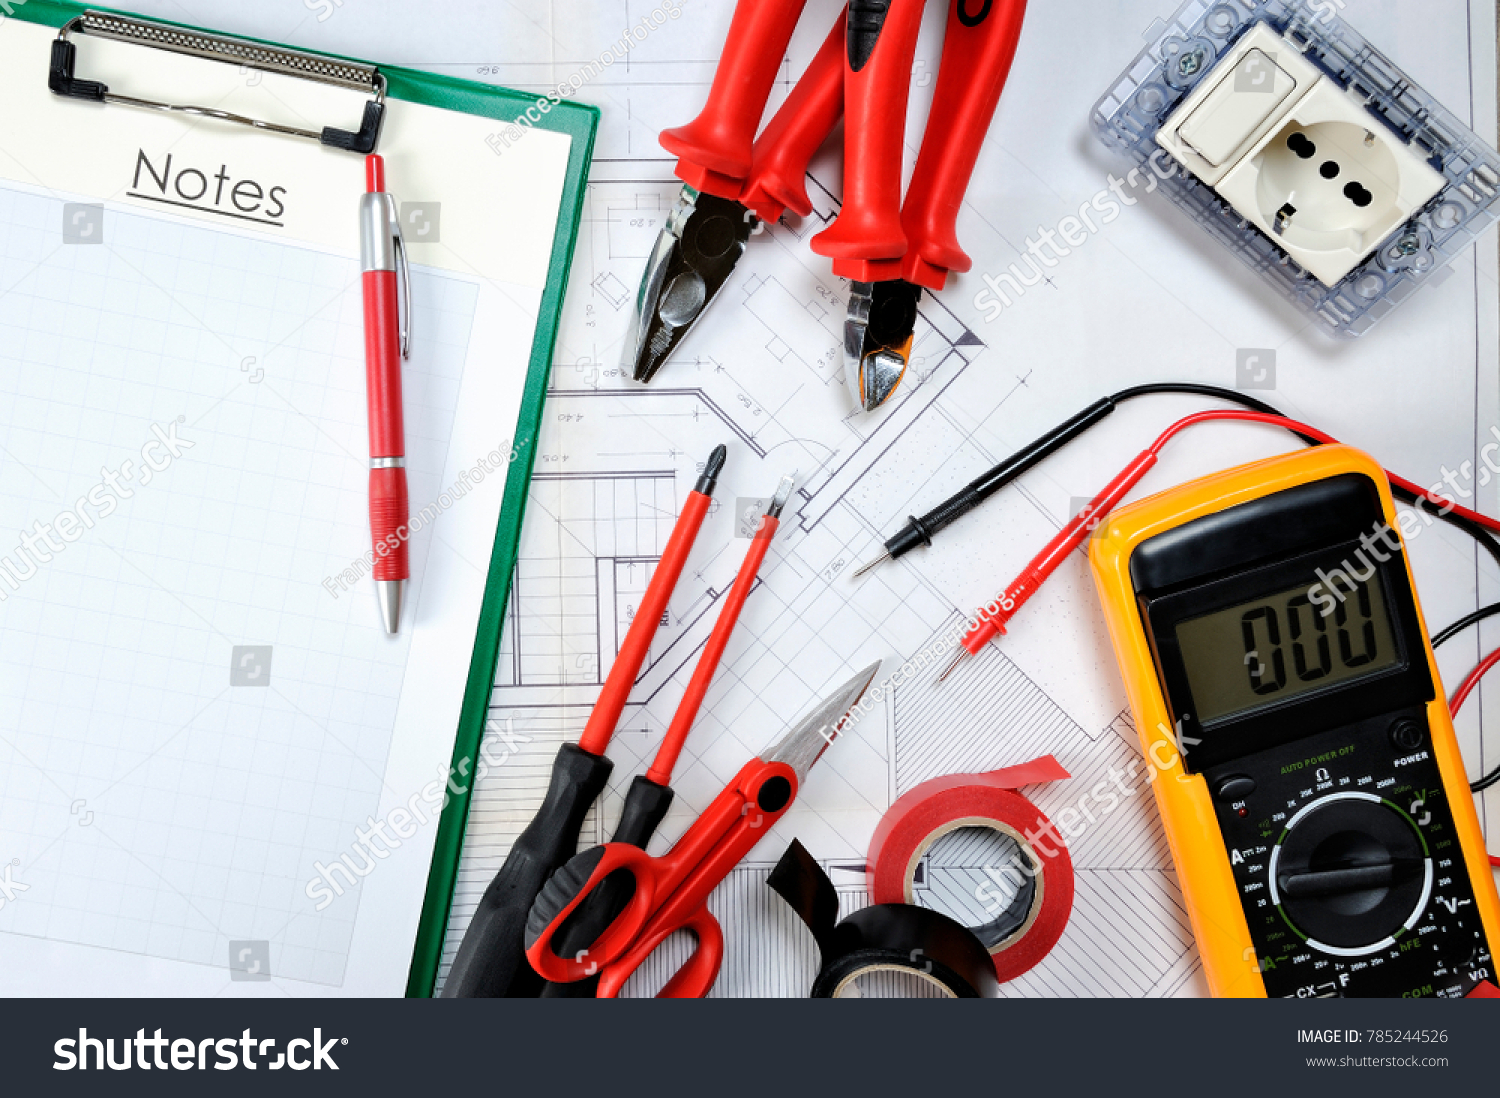 Auto Electrical Wiring Tools Command Protection Equipment Operating Stock Photo And For In Compliance With The Safety Standards Of